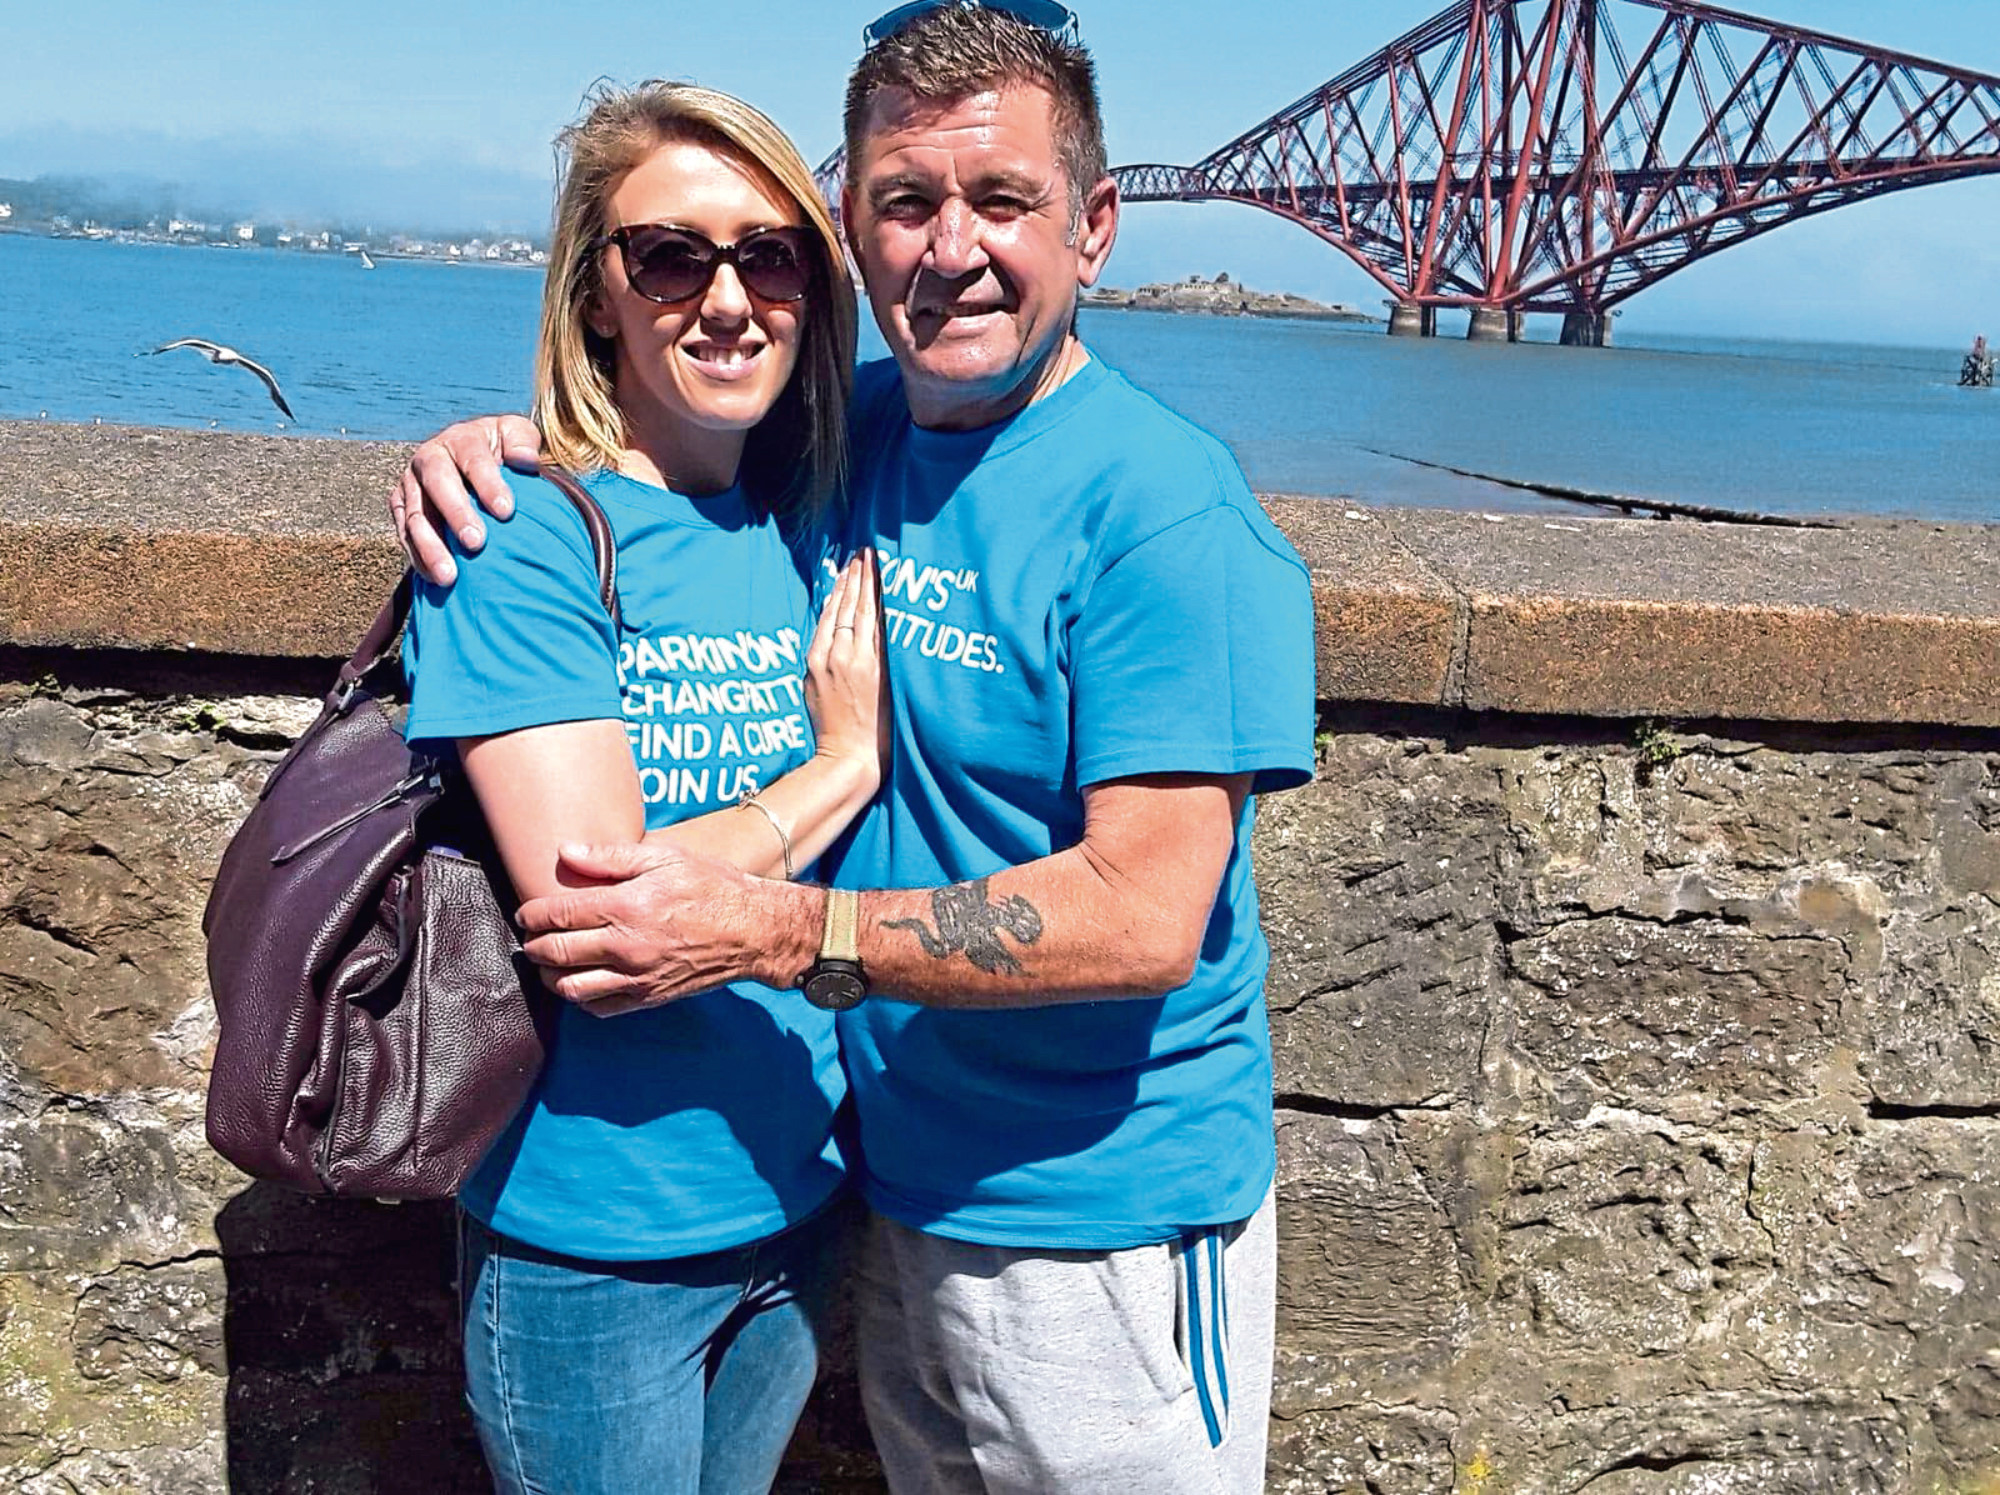 Katies Swales with father Vince, after she completed her abseil on the Forth Rail Bridge